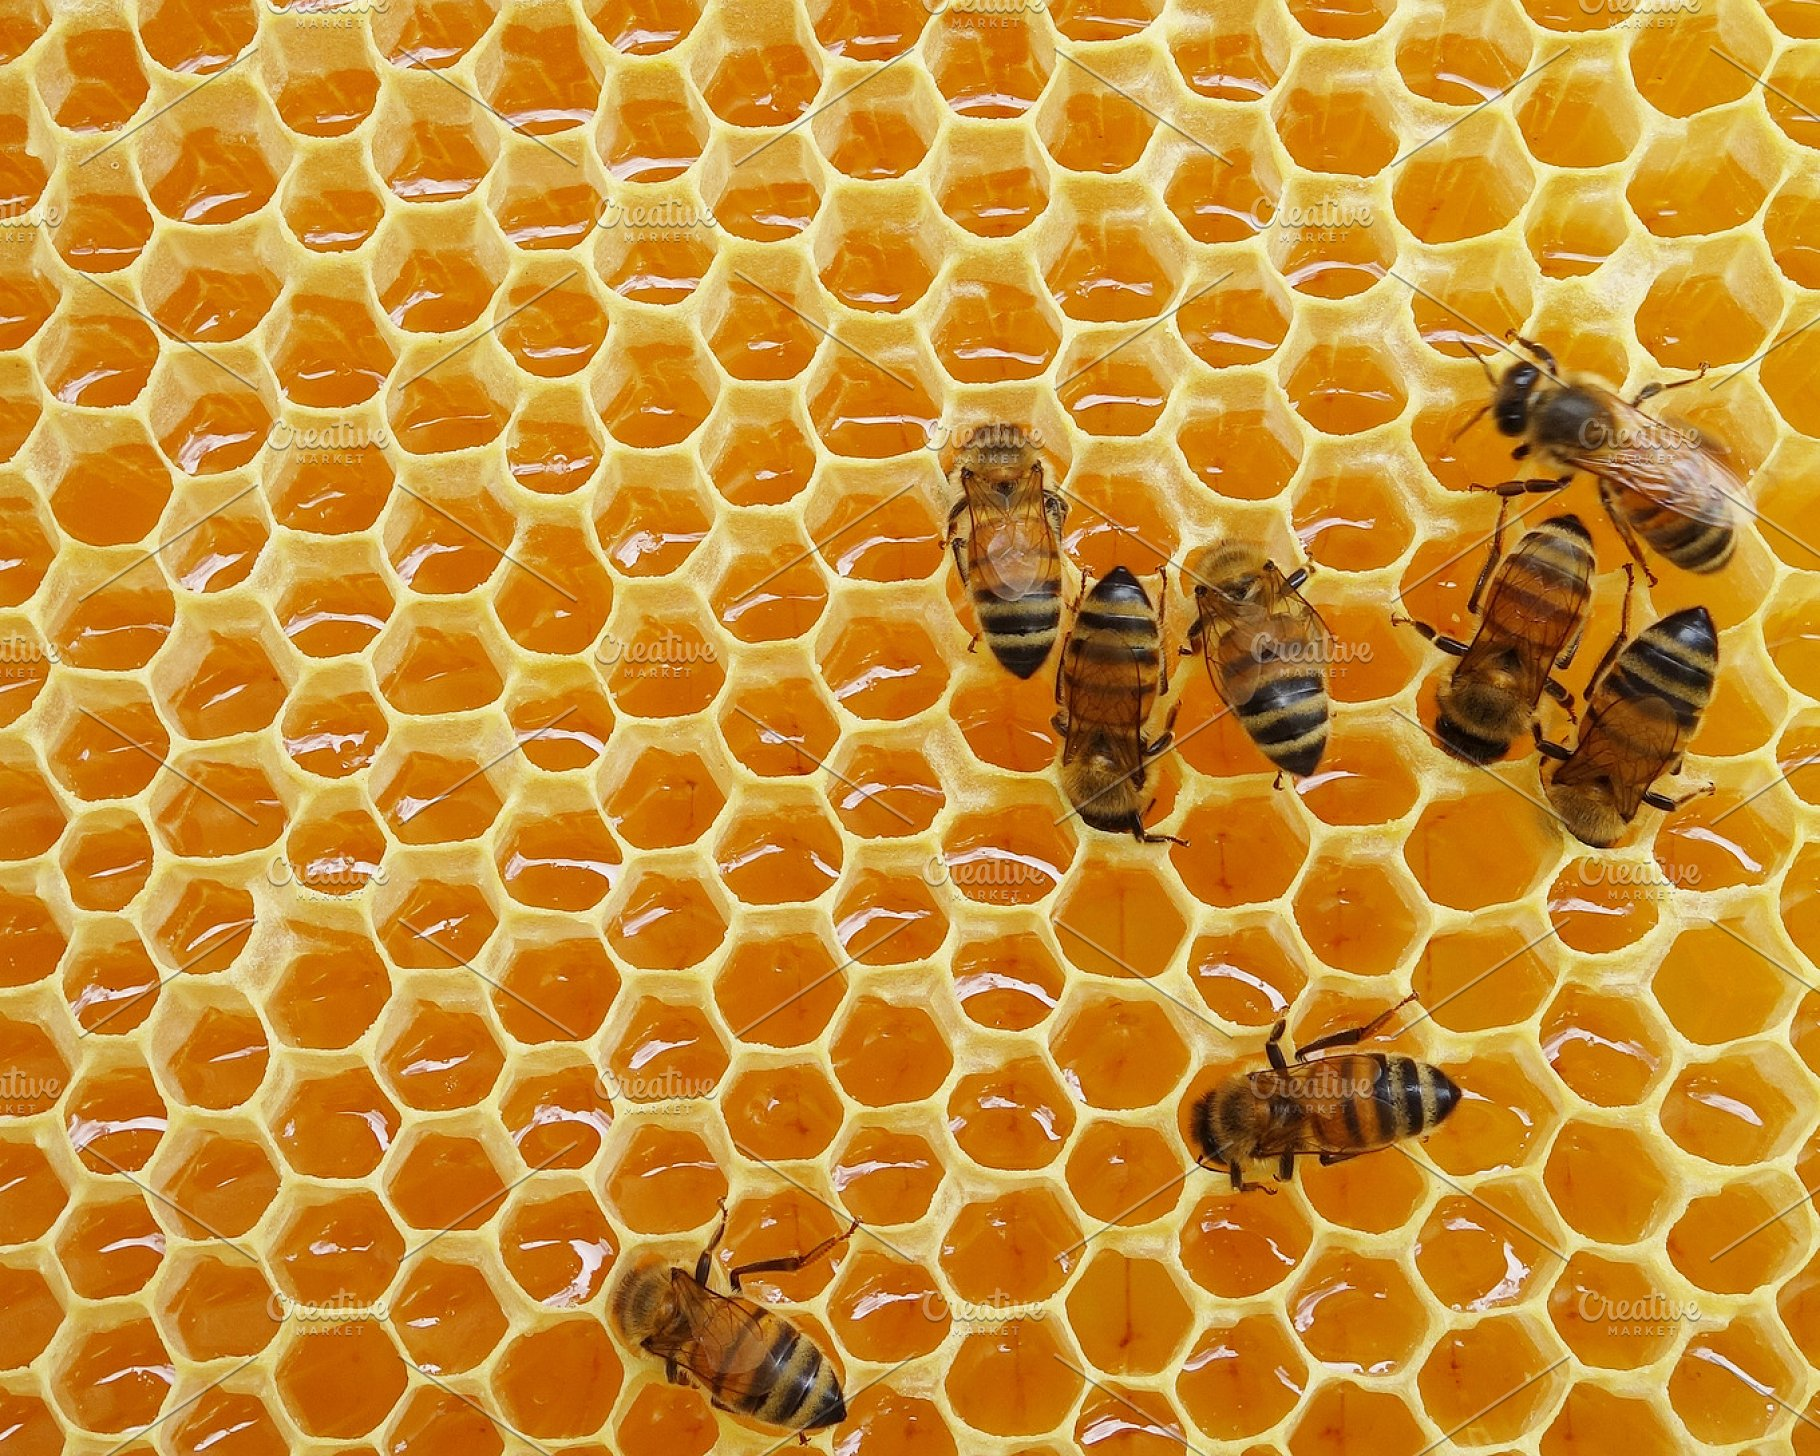 Honey Bees on Honeycomb | High-Quality Animal Stock Photos ...